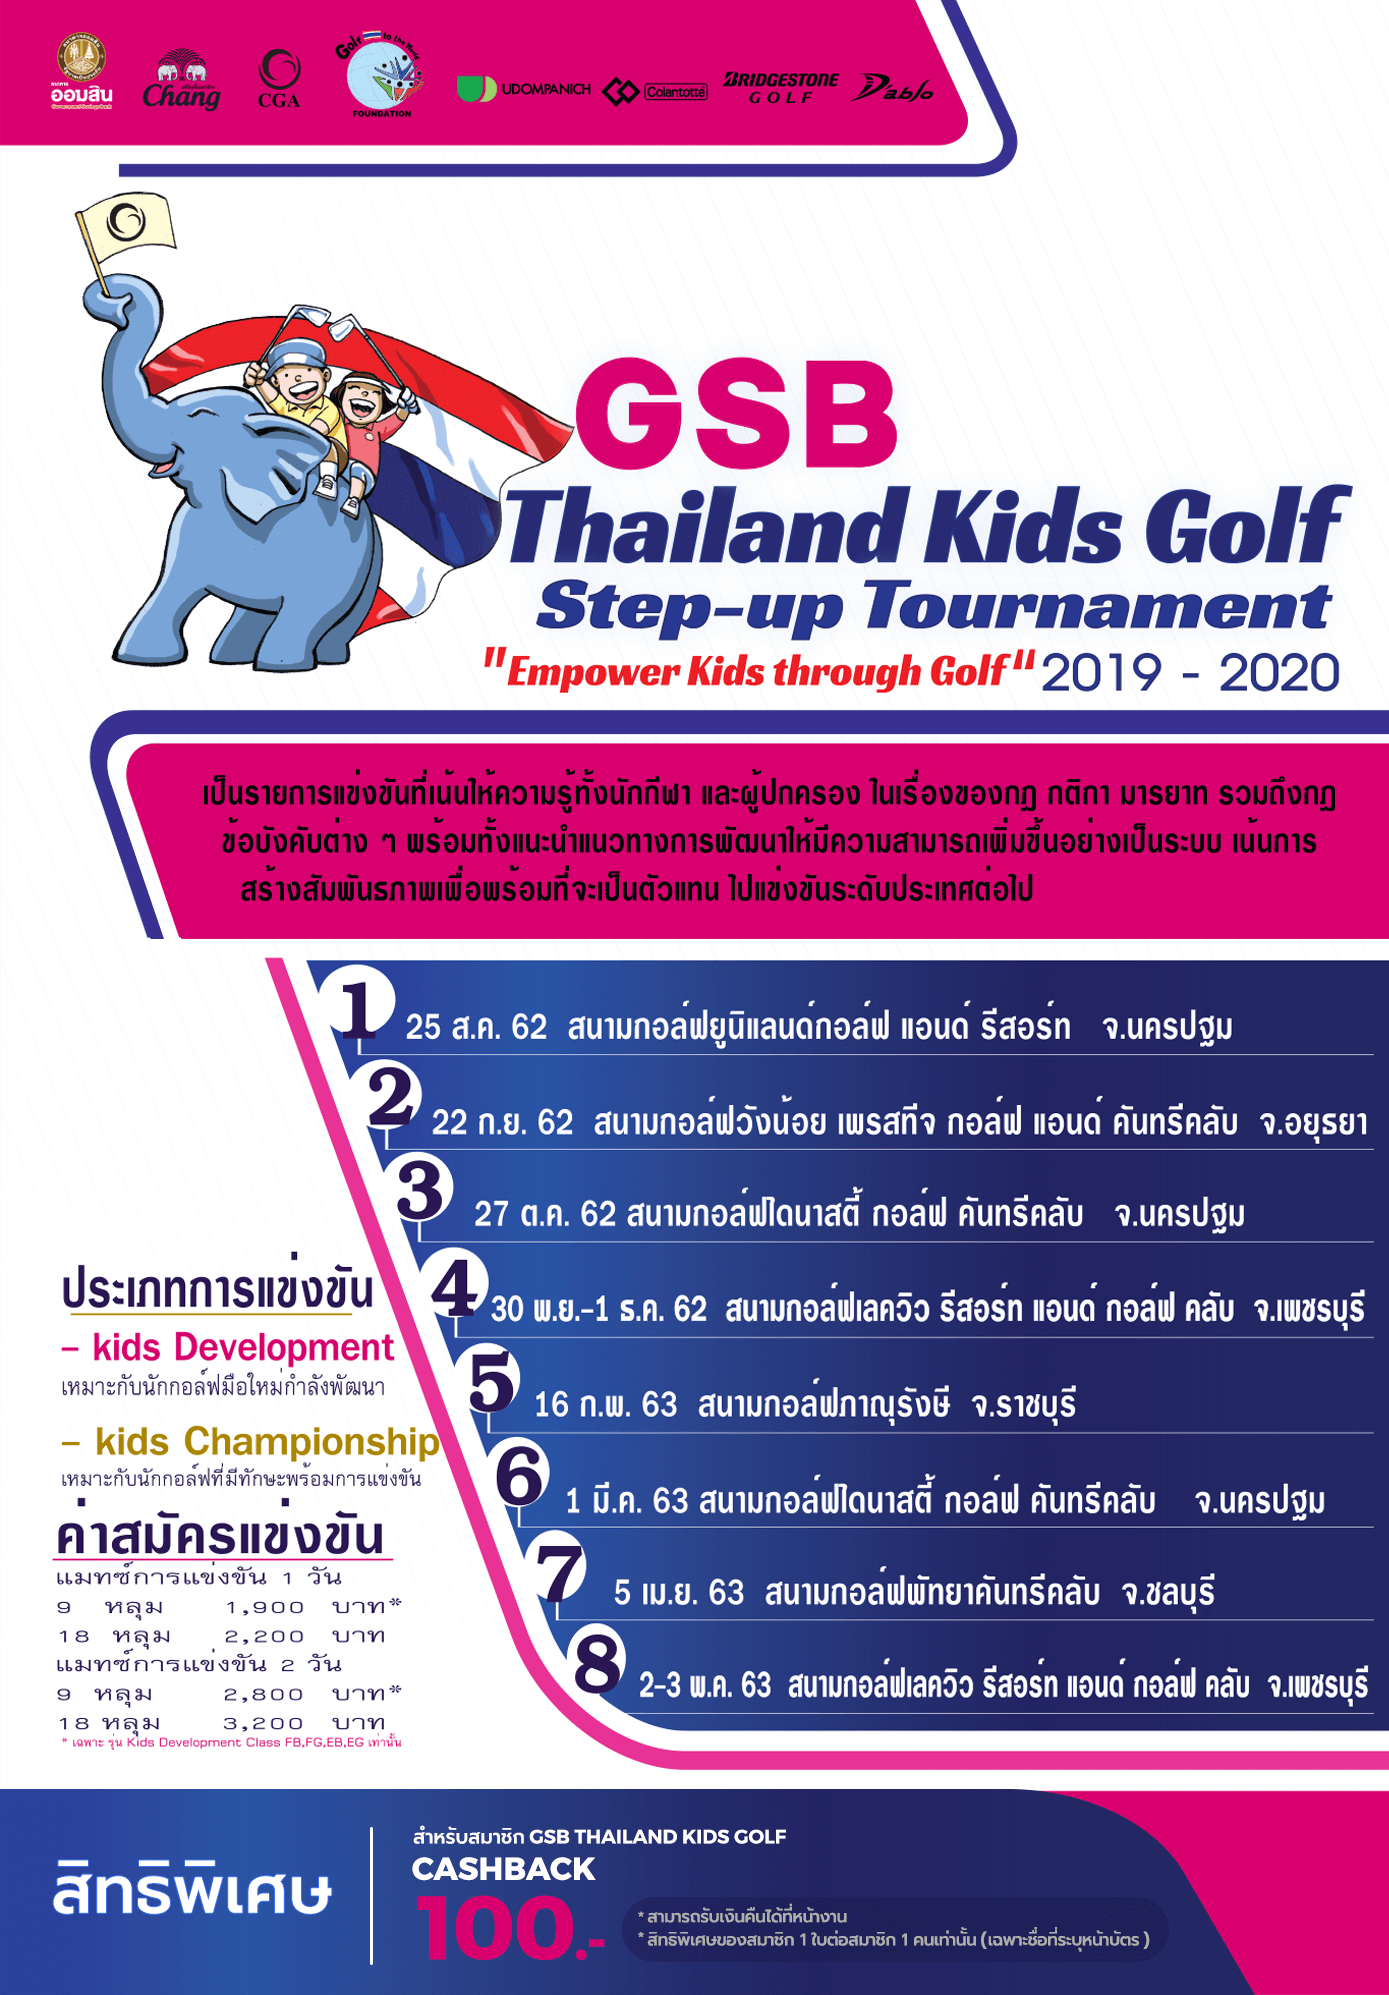 GSB Thailand Kids Golf Step-up Tournament 2019 - 2020